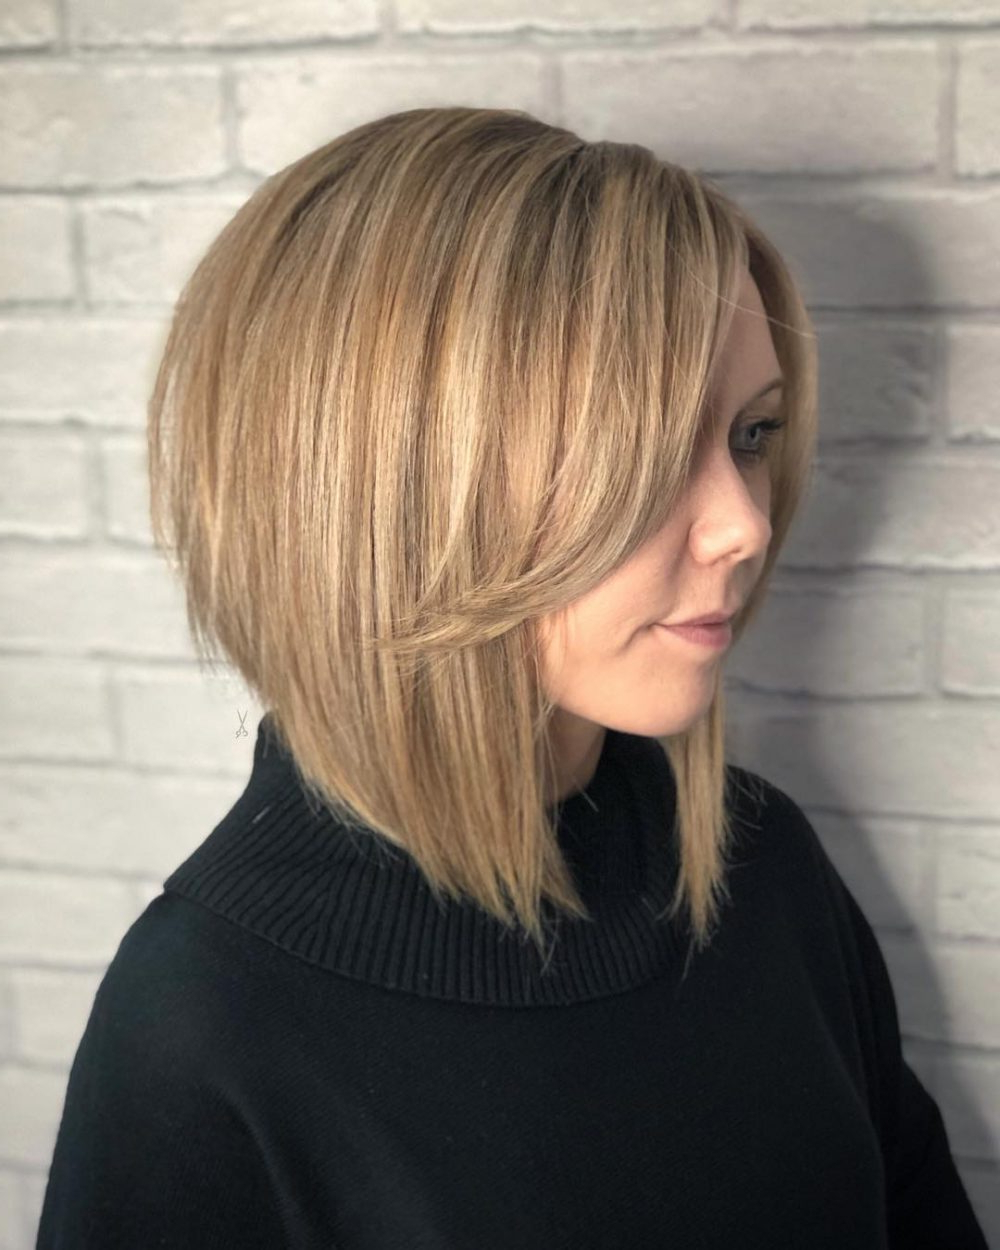 34 Greatest Short Haircuts And Hairstyles For Thick Hair For 2018 In Layered Bob Hairstyles For Thick Hair (View 7 of 20)